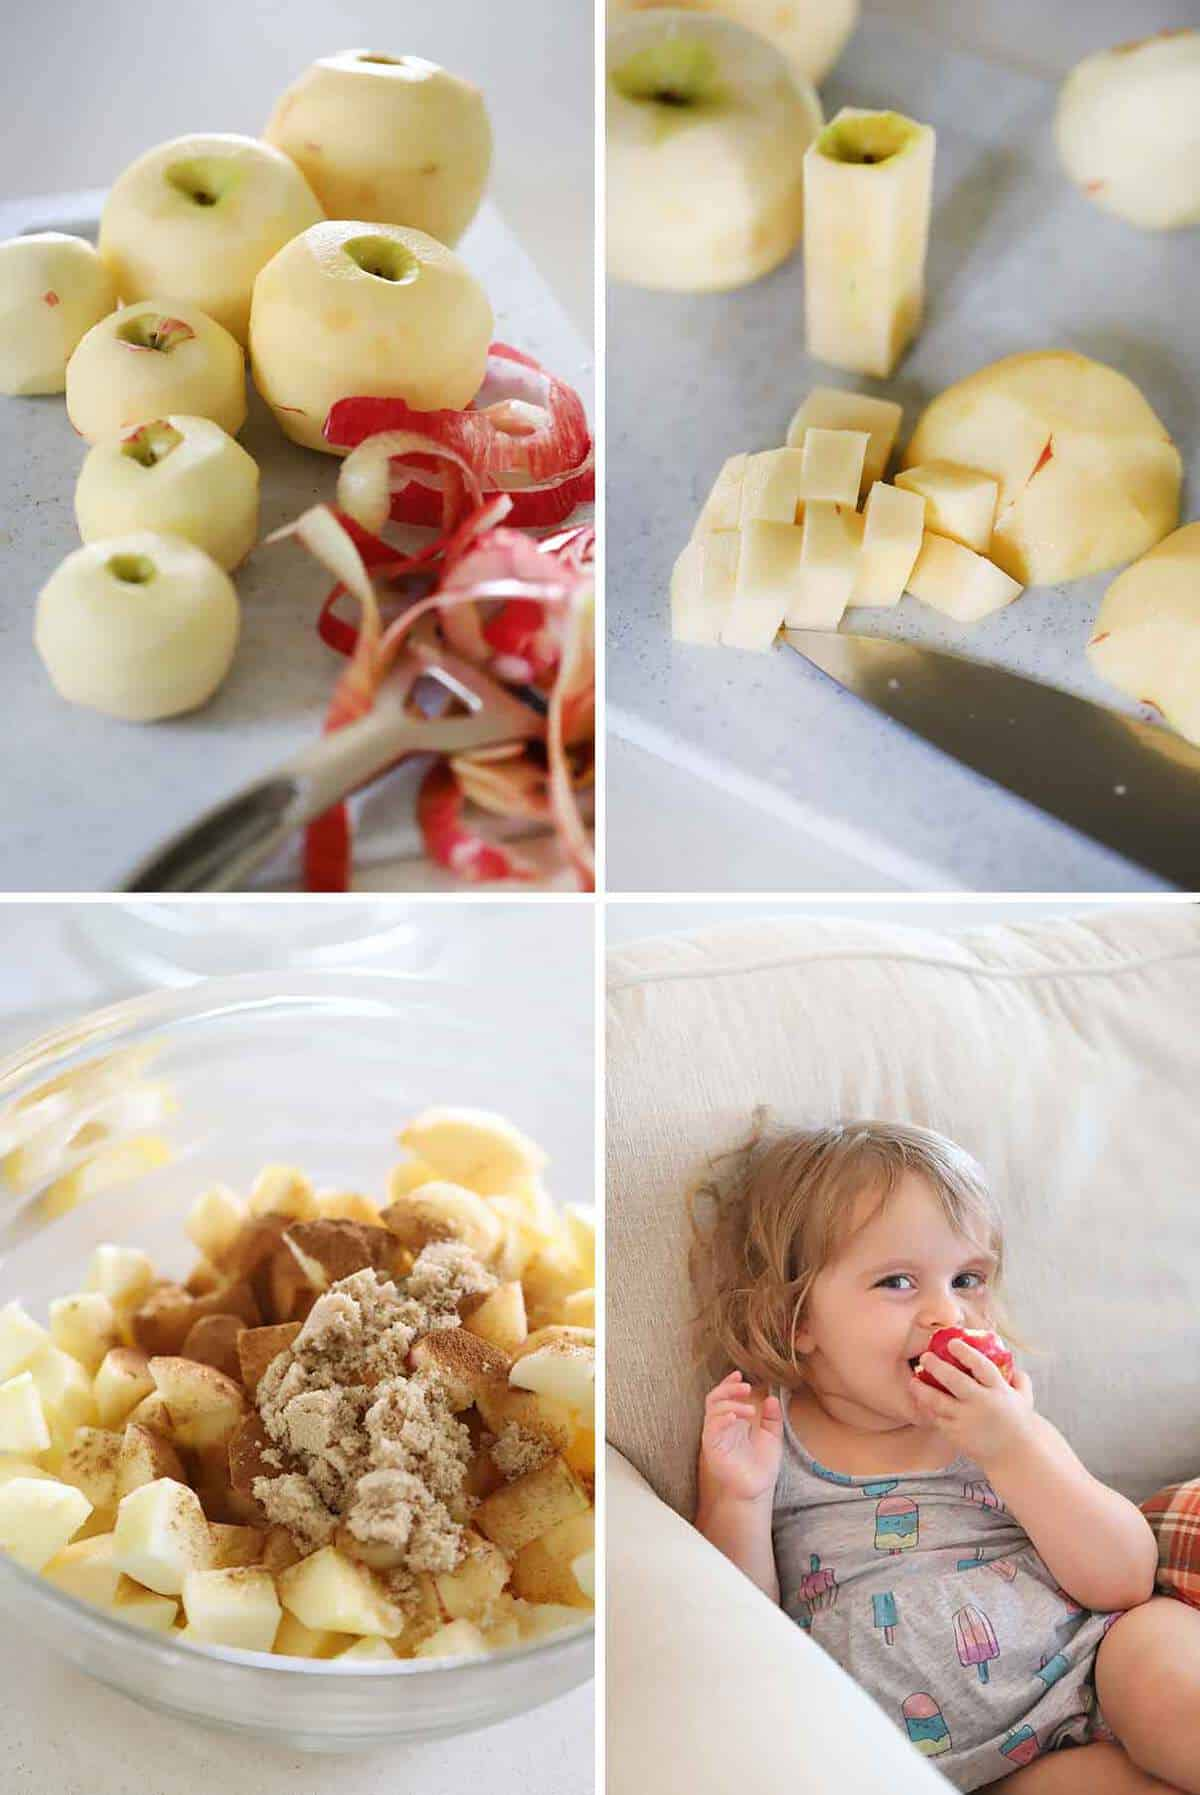 Peeled and diced apples mixed in a bowl with cinnamon and brown sugar and a child eating an apple on a couch.